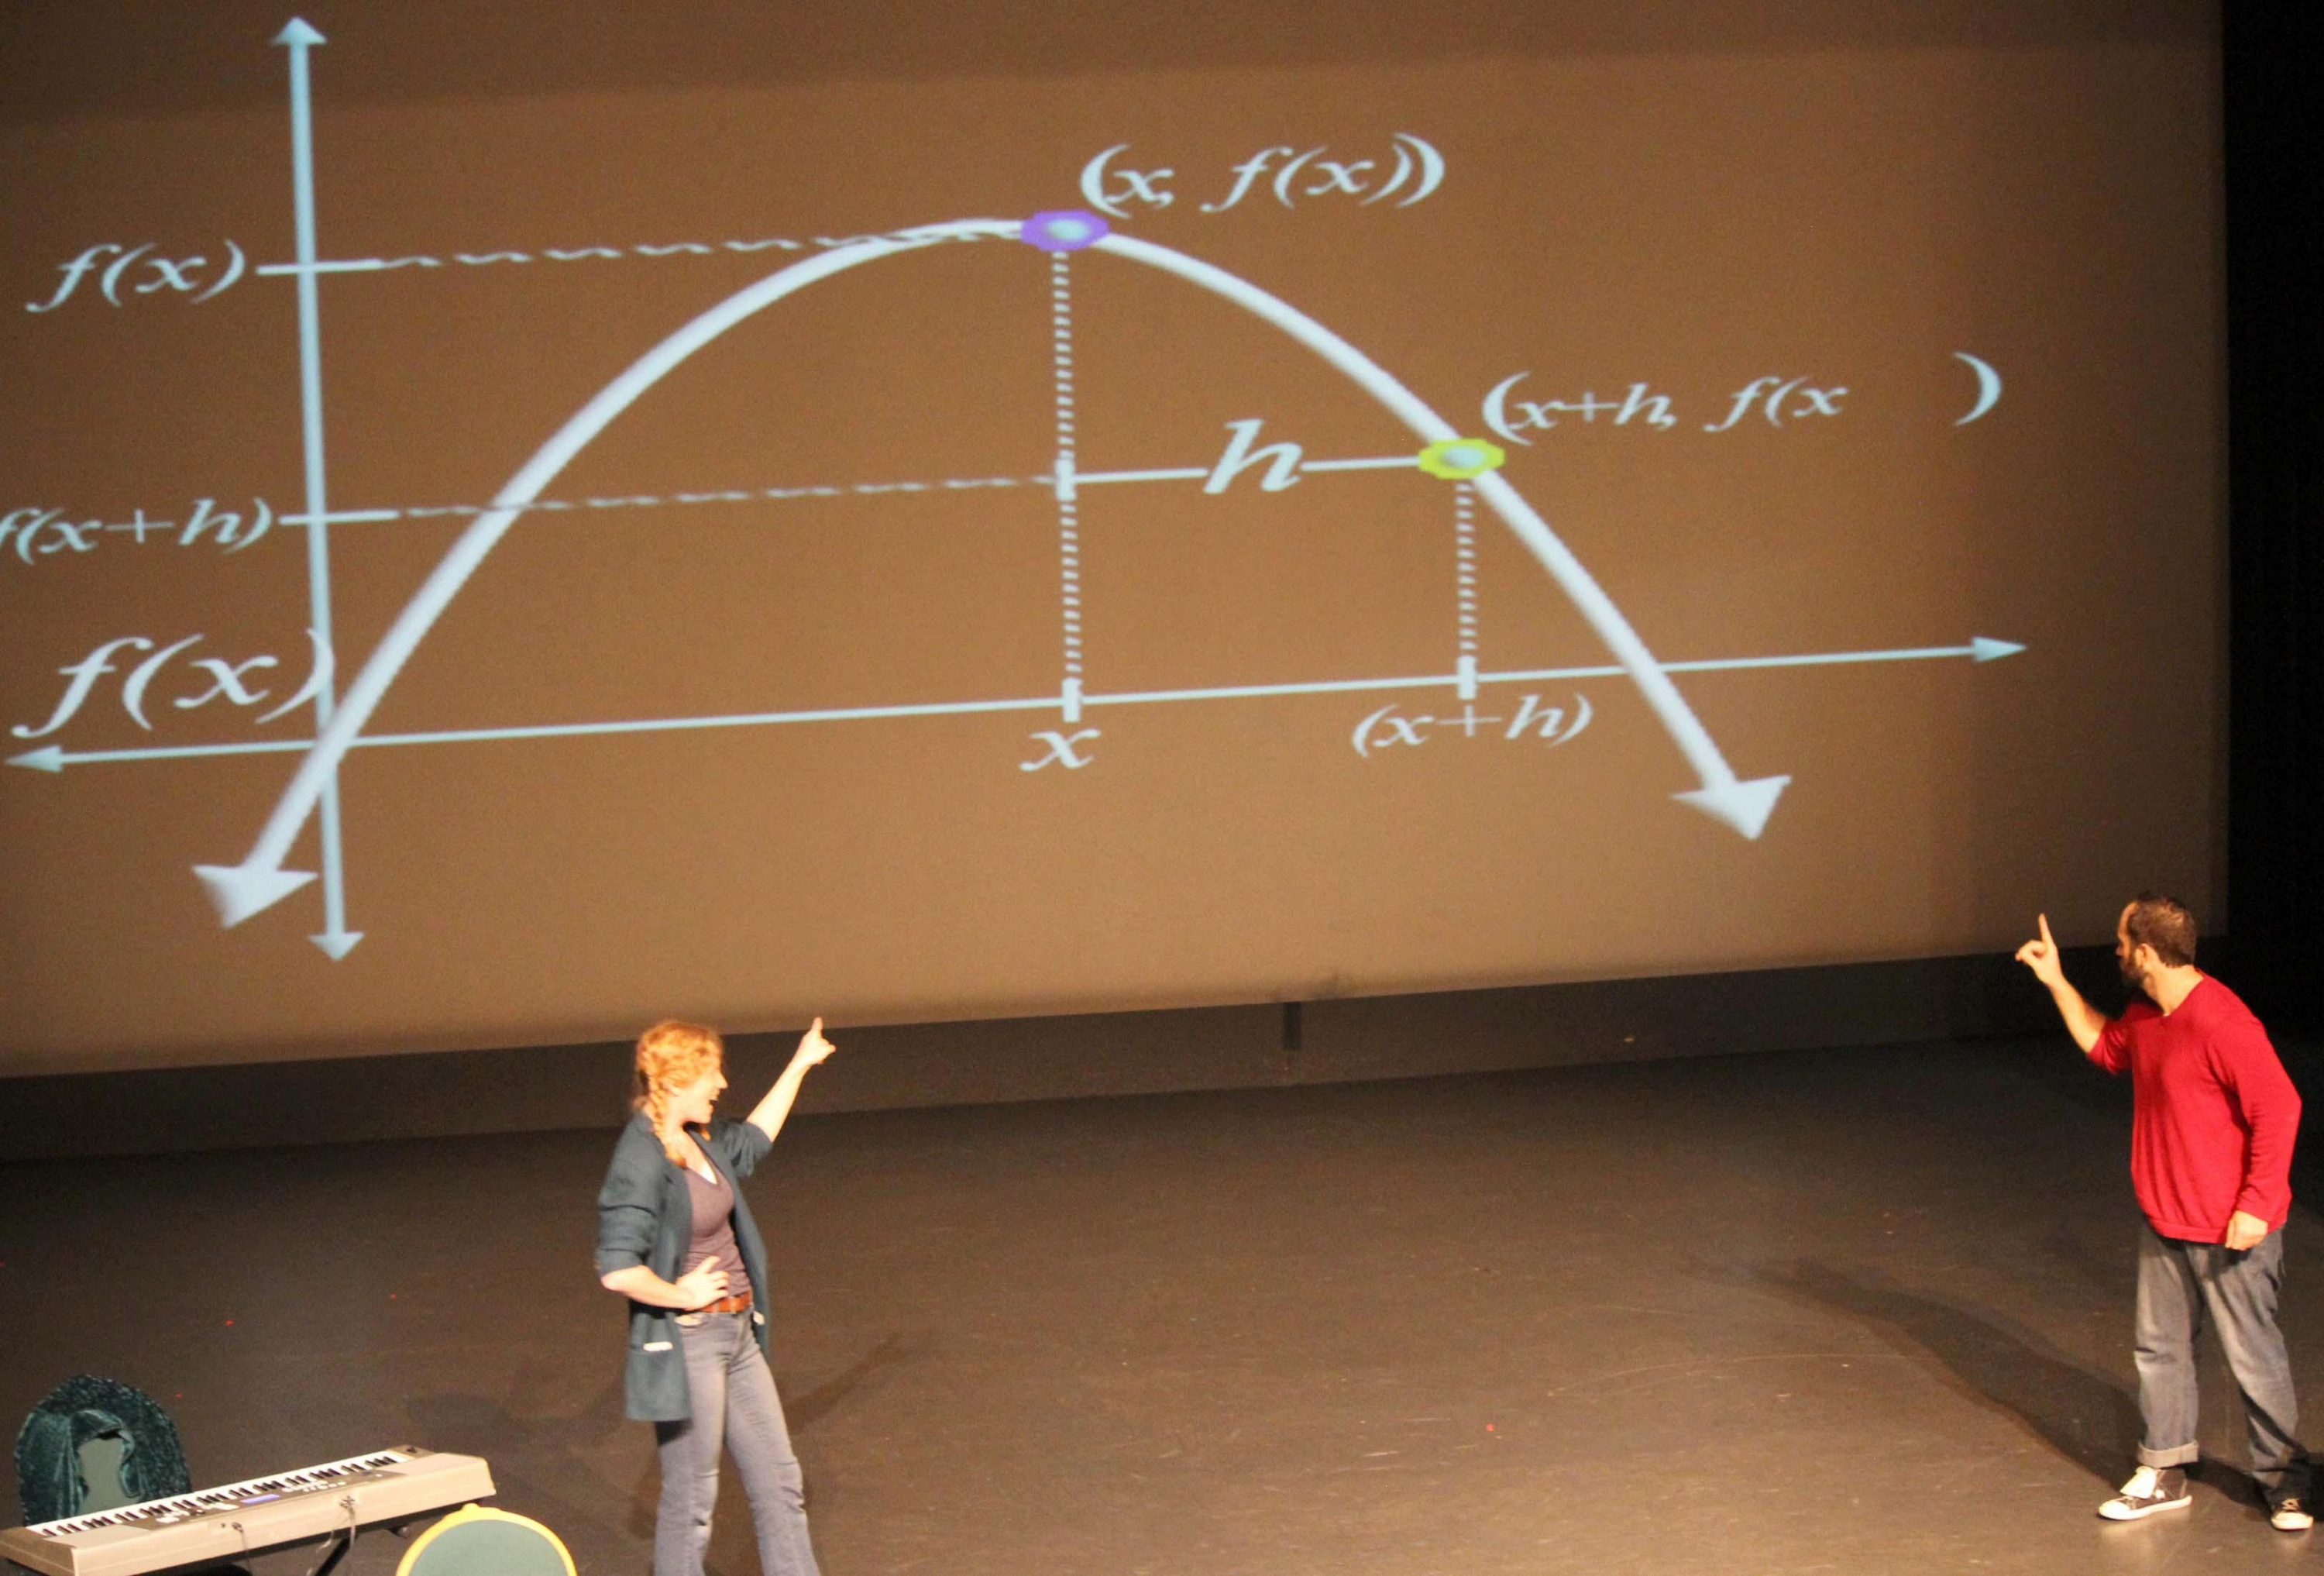 The Math and Music Presentation that was part of Math Week 2014.  This image shows a parabola plotted as a function of x.